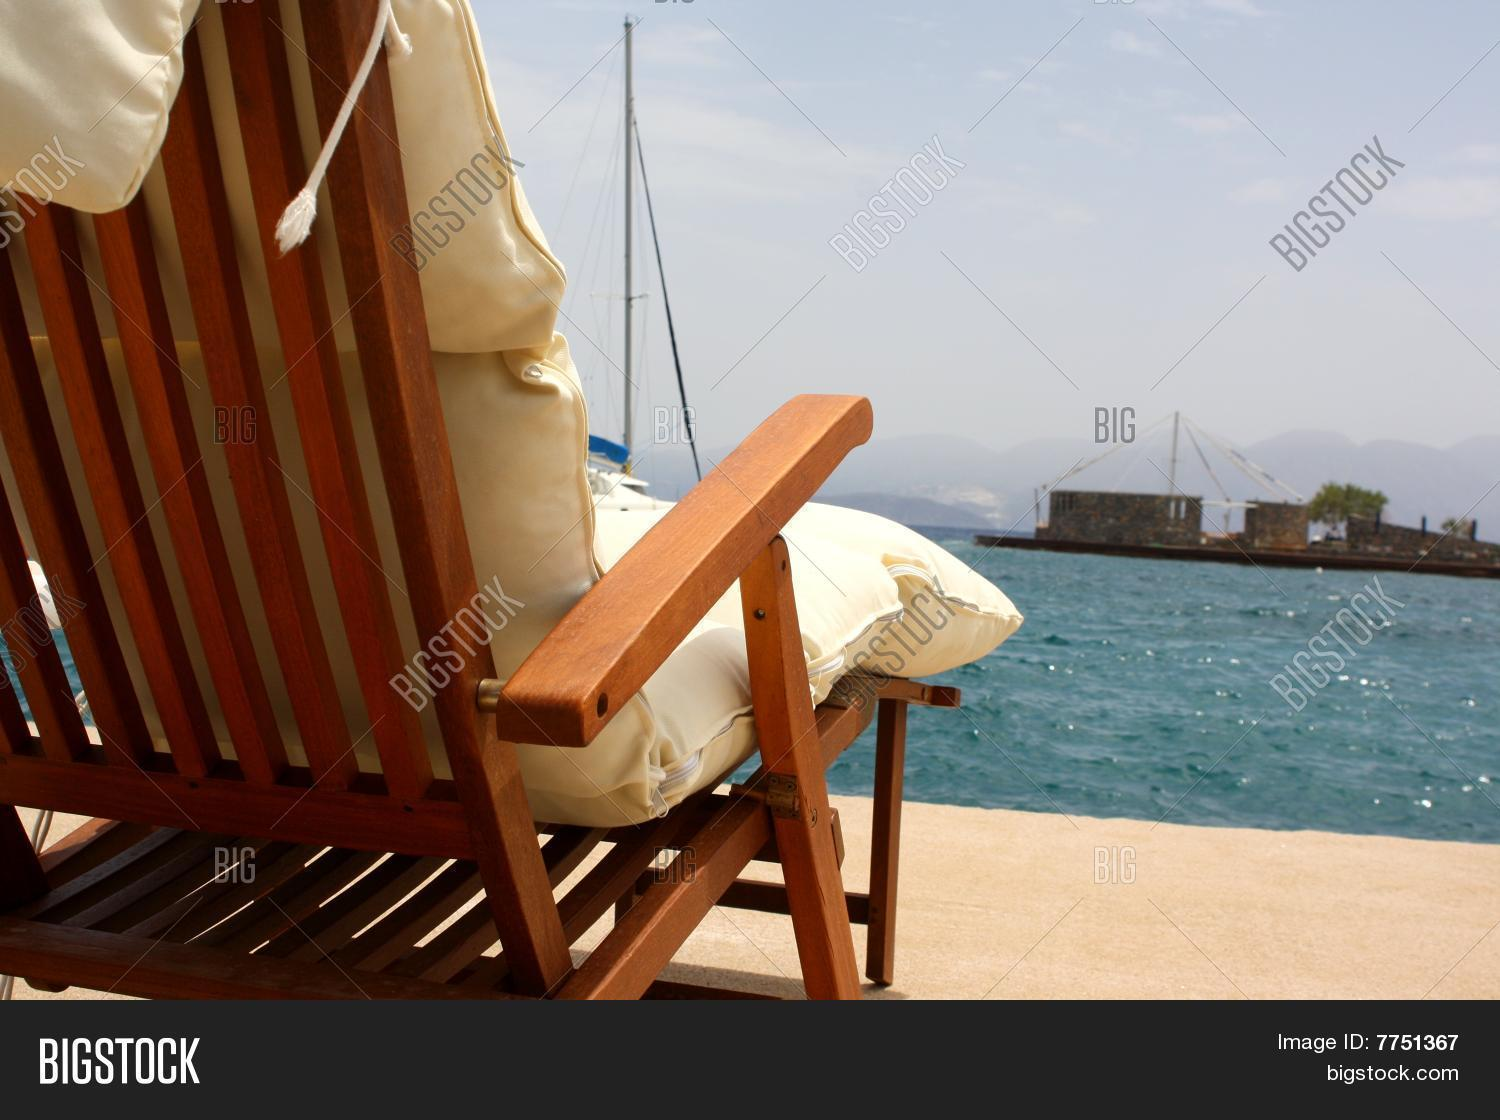 lay down beach chairs reclining leather massage chair image and photo bigstock